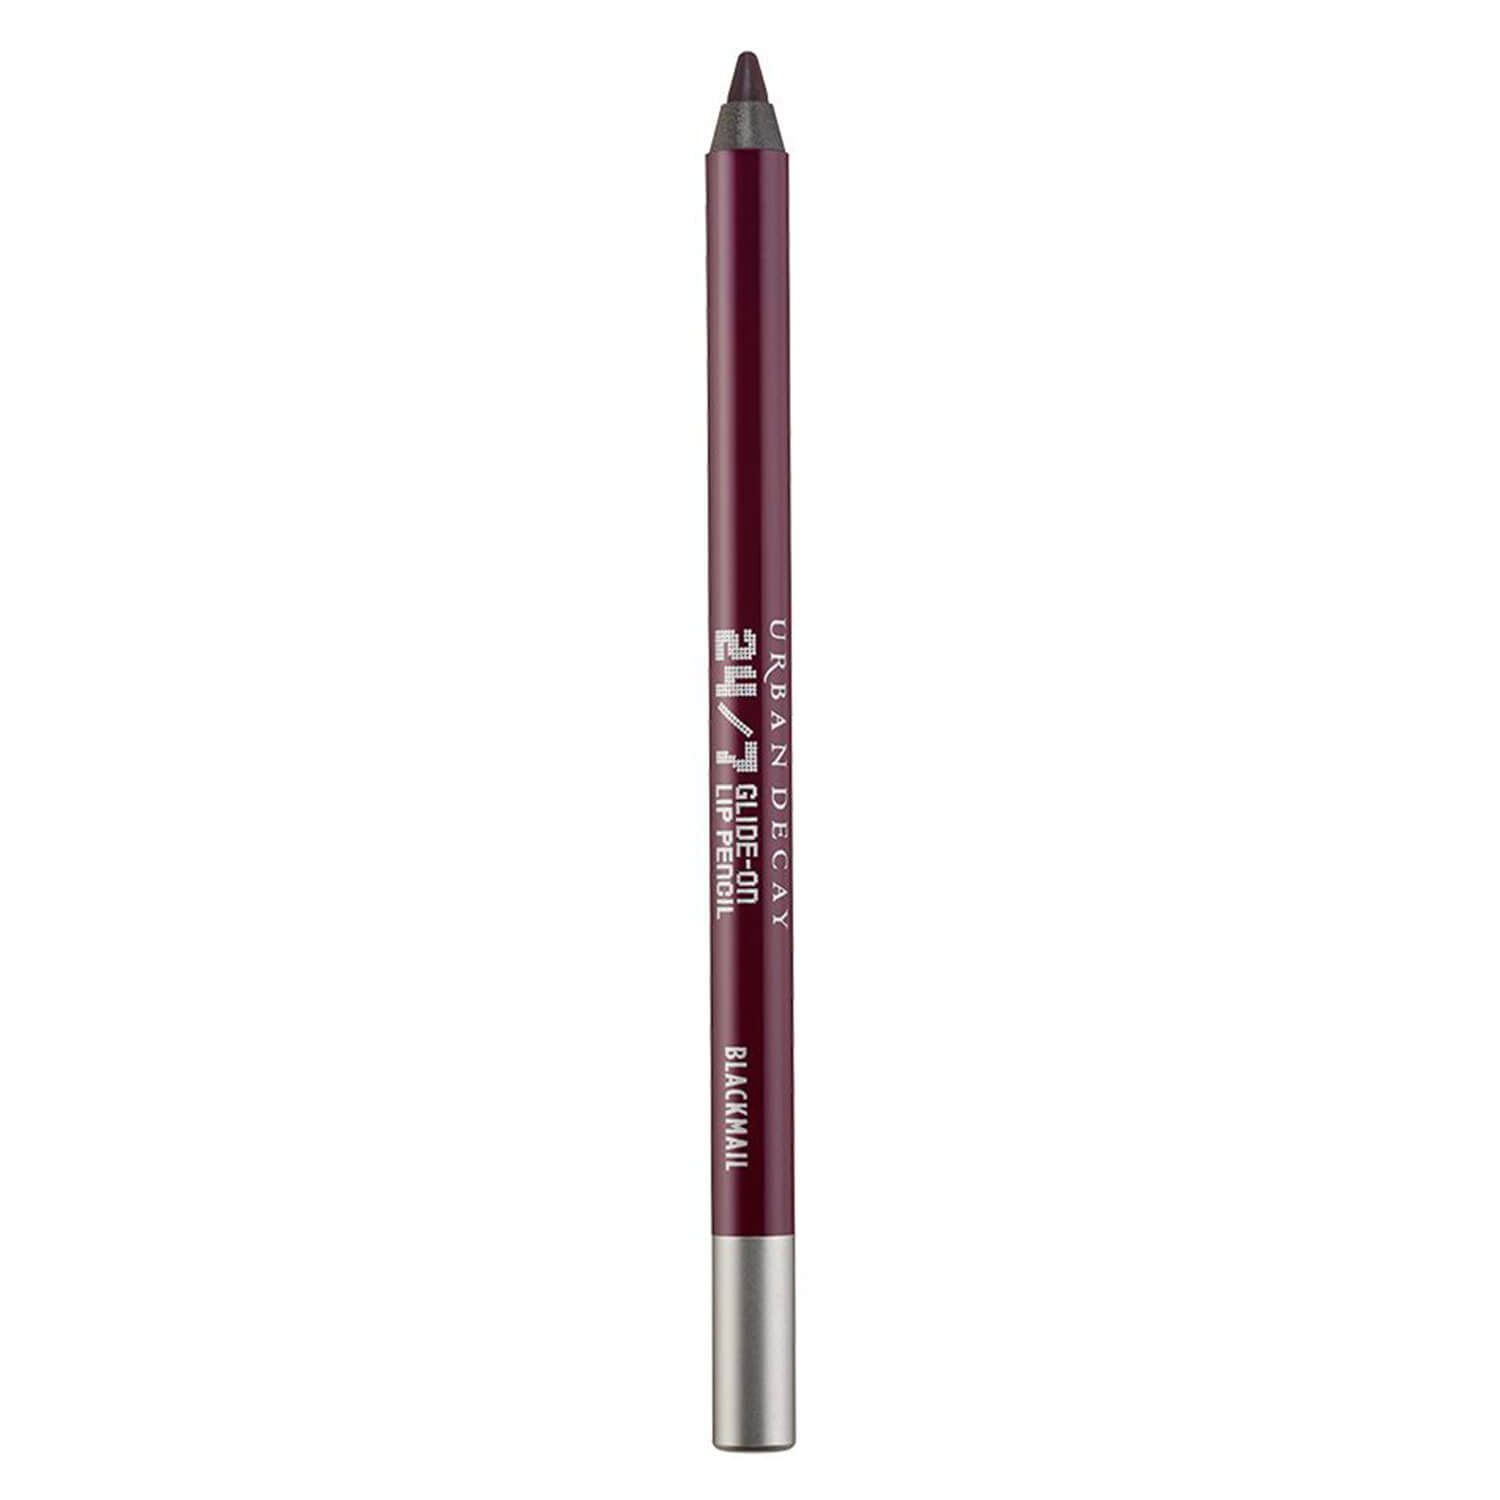 24/7 Glide-On - Lip Pencil Blackmail